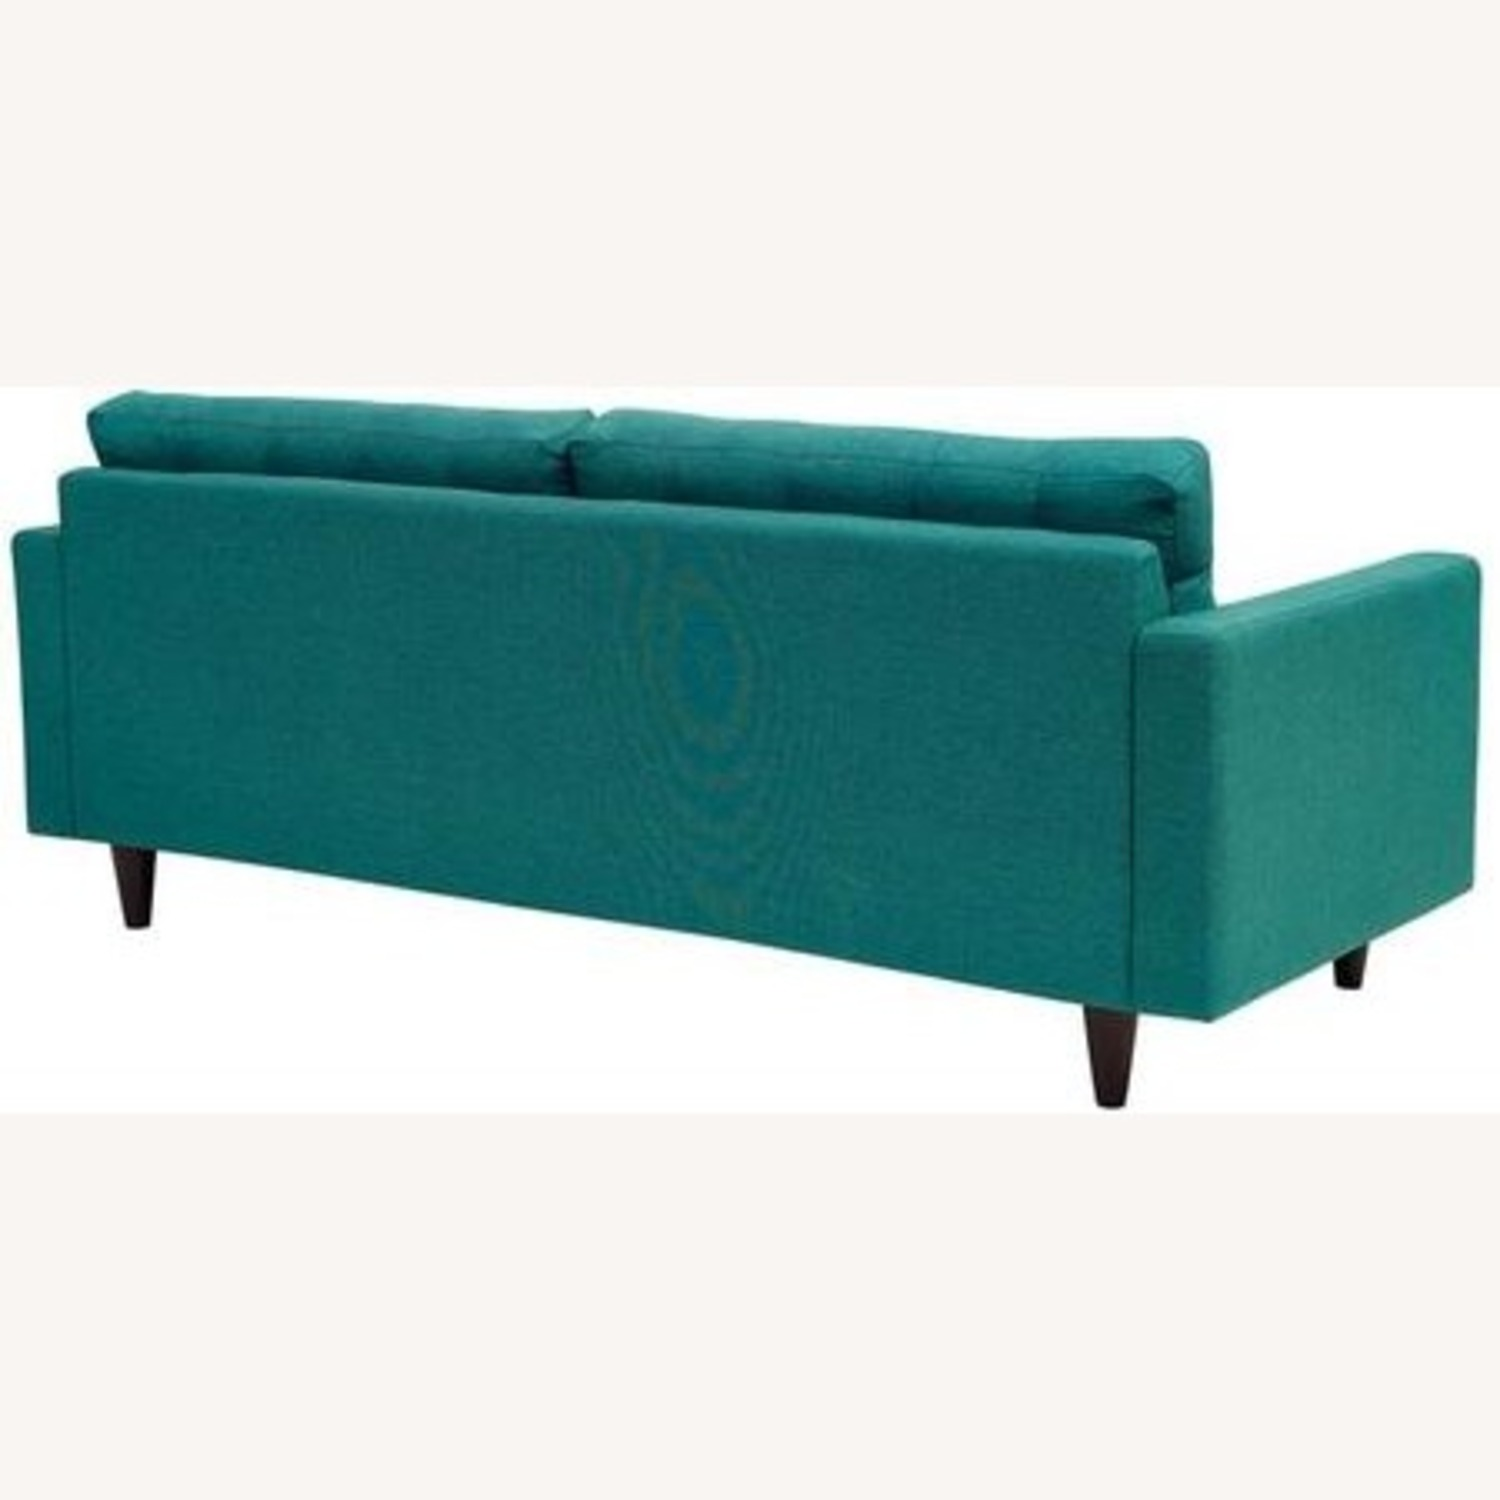 Modern Style Sofa In Teal Fabric W/ Tufted Buttons - image-2